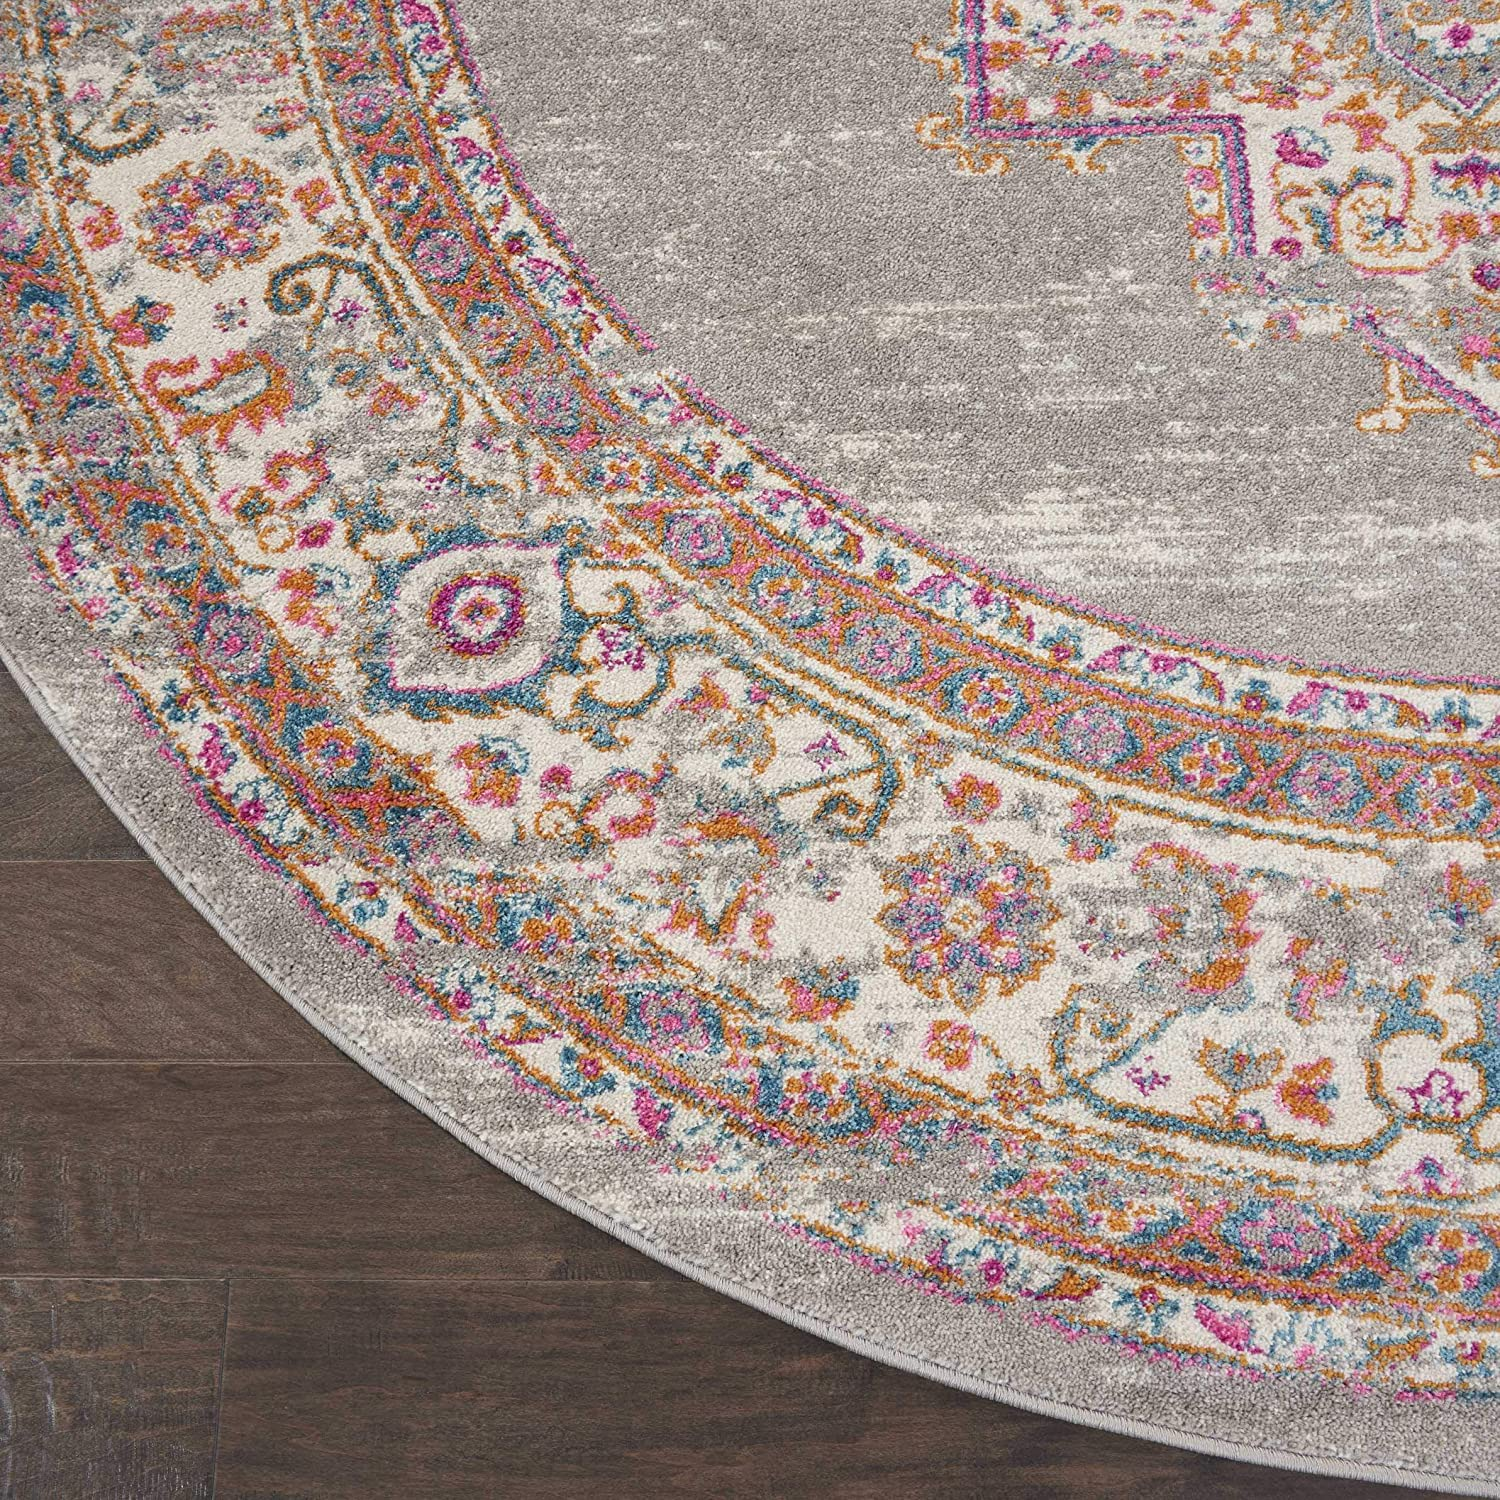 22 x 76 Nourison PSN03 Passion Traditional Area Rug GREY